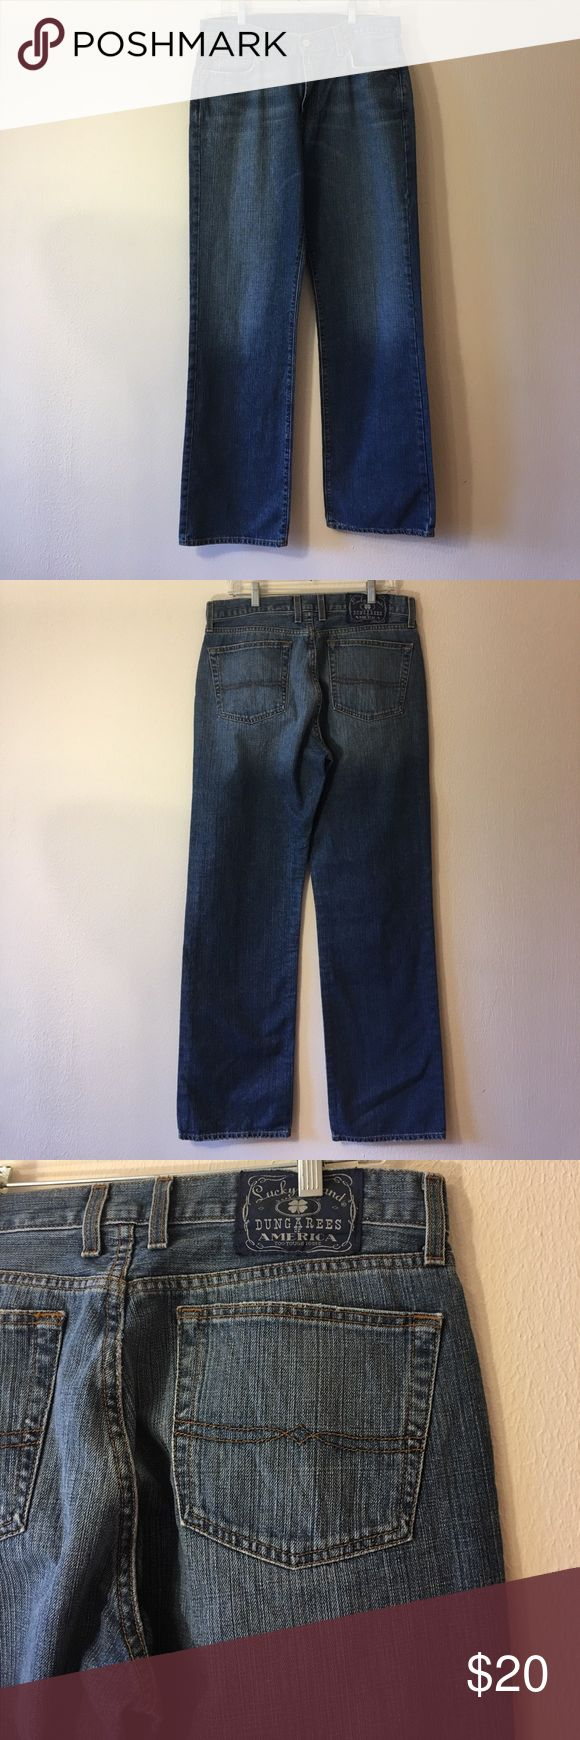 Lucky Brand Dungarees jeans Excellent condition 👍34 long Lucky Brand Jeans